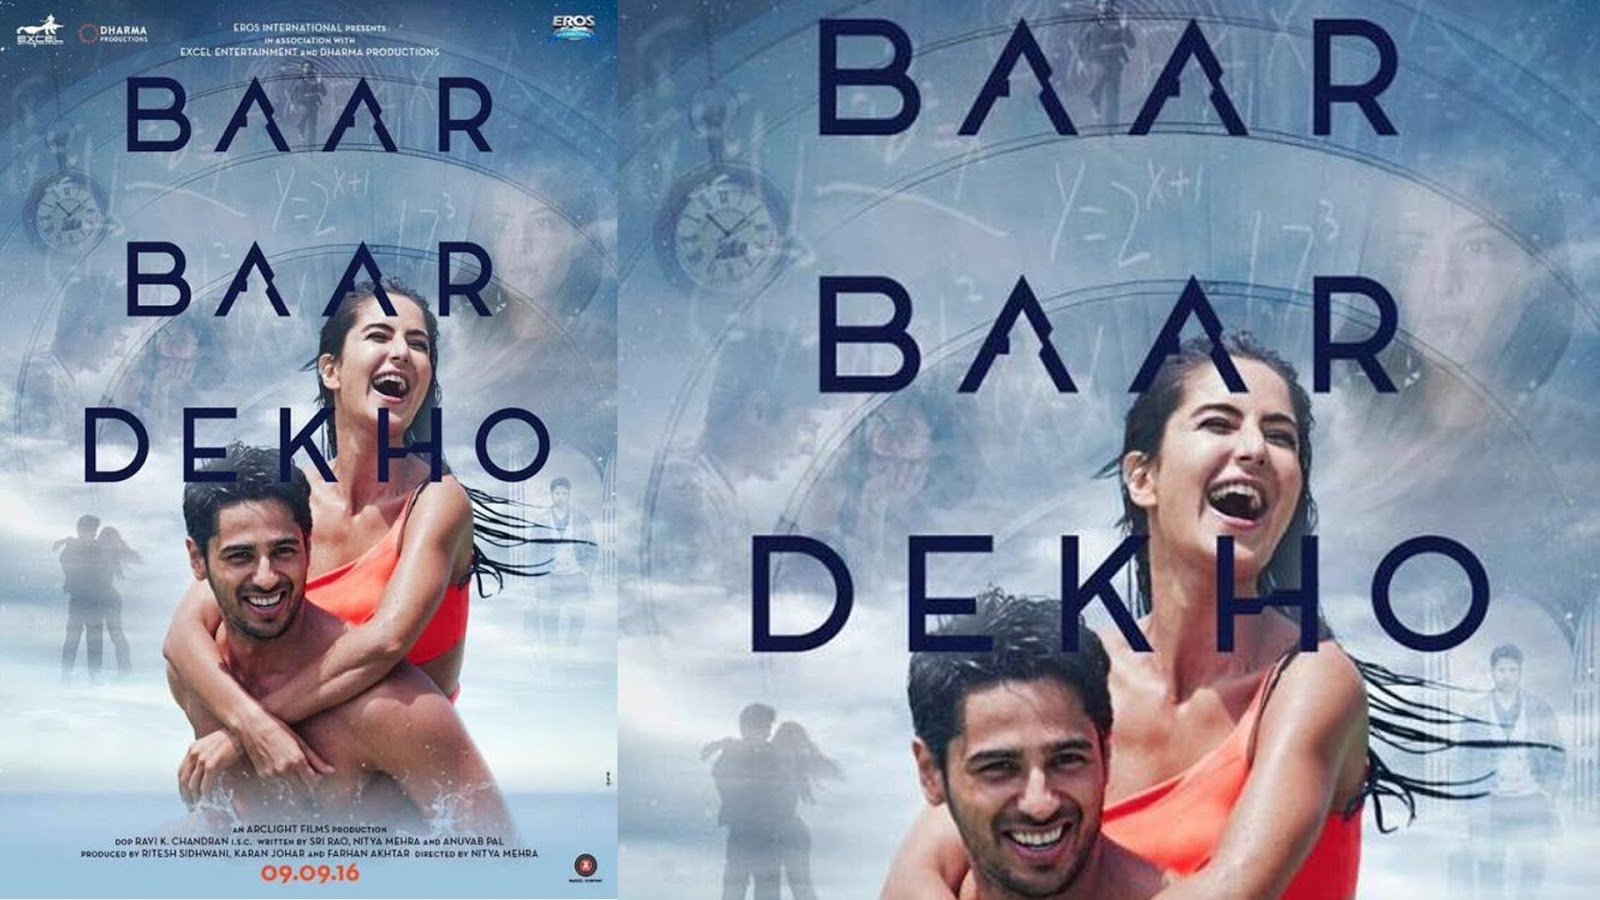 Complete cast and crew of Baar Baar Dekho  (2016) bollywood hindi movie wiki, poster, Trailer, music list - Sidharth Malhotra and Katrina Kaif, Movie release date 9 September, 2016